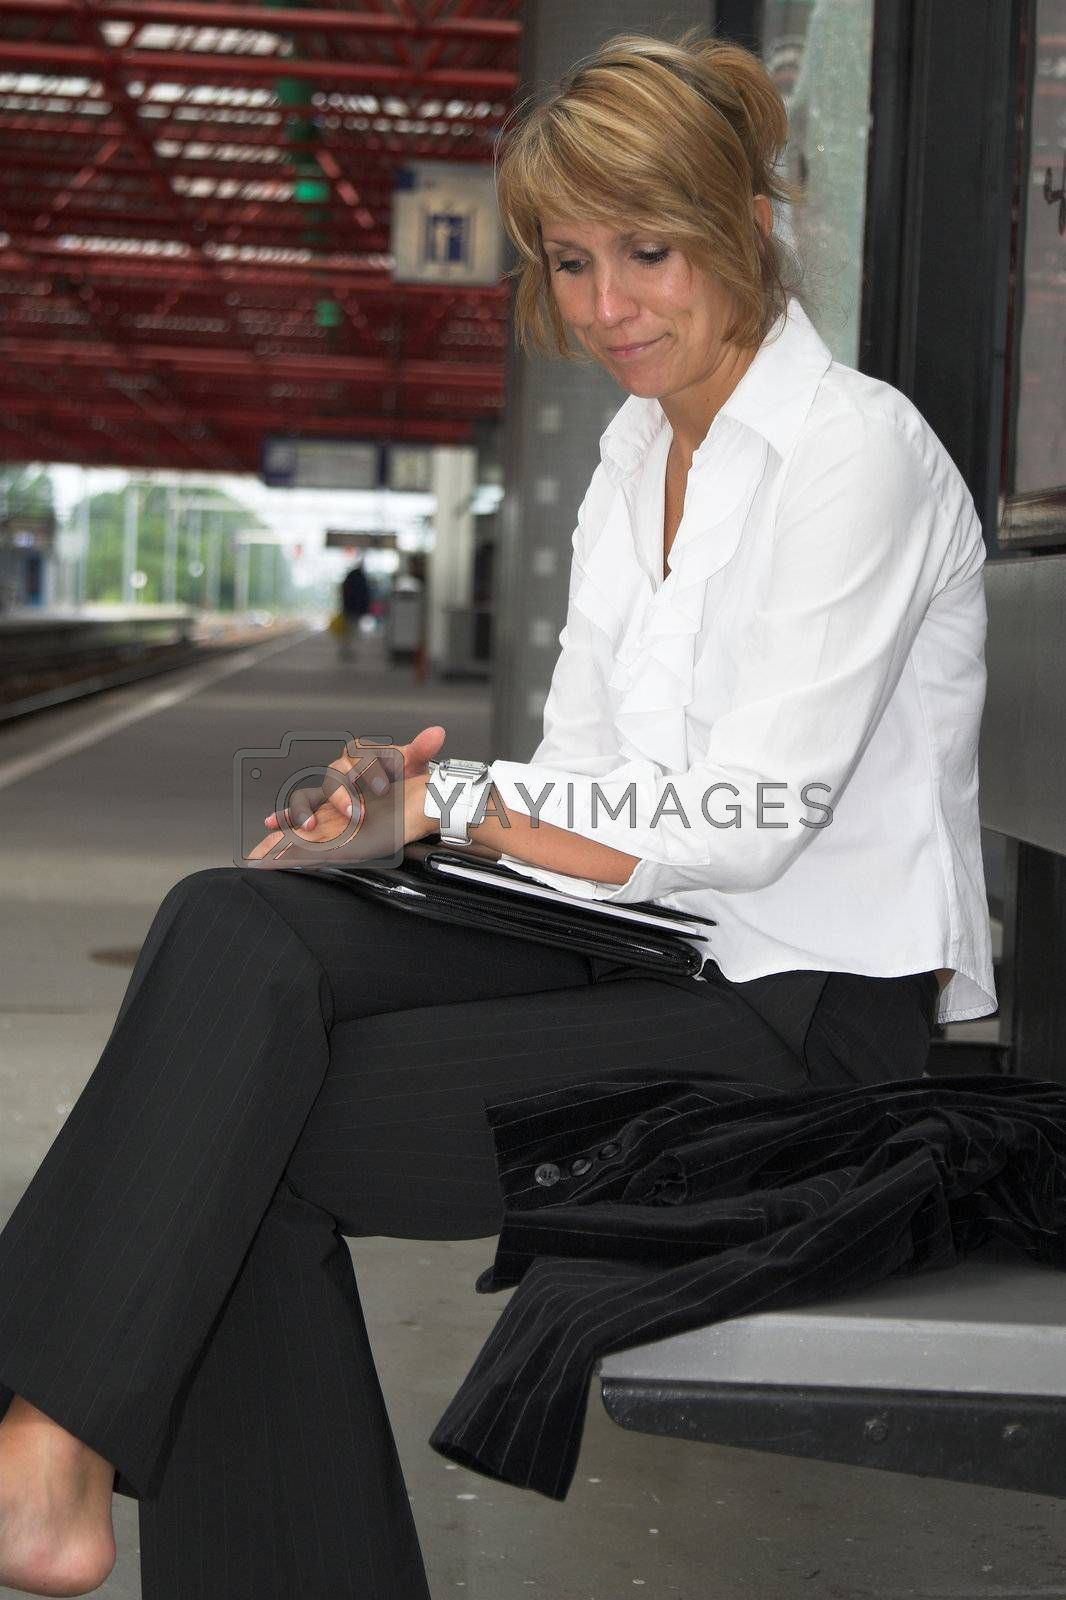 Businesswoman pulling an irritated face while waiting for the train